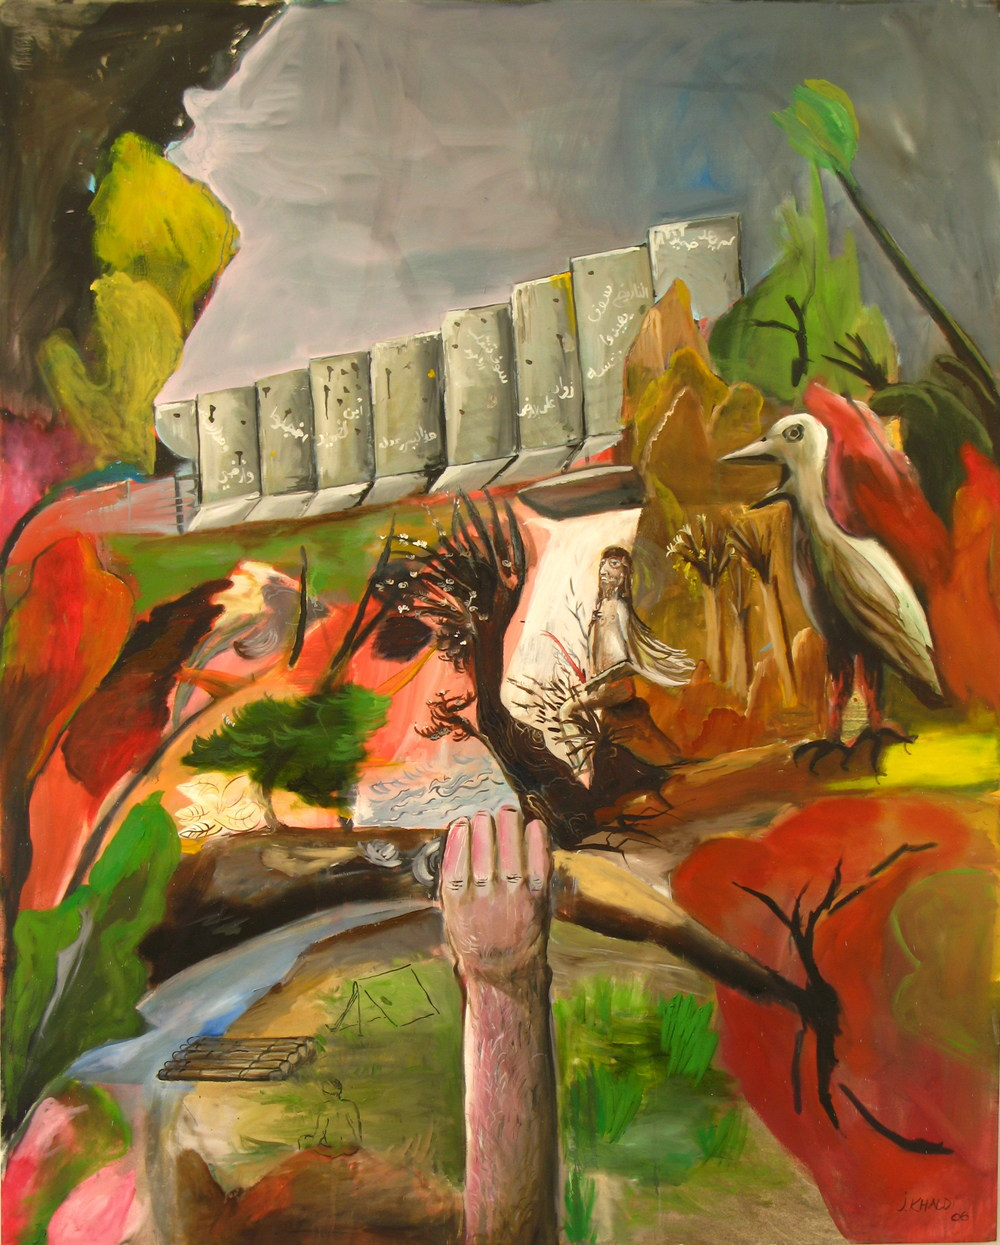 Temporary Emotional State  (2007)  Oil on canvas  185 * 230 cm